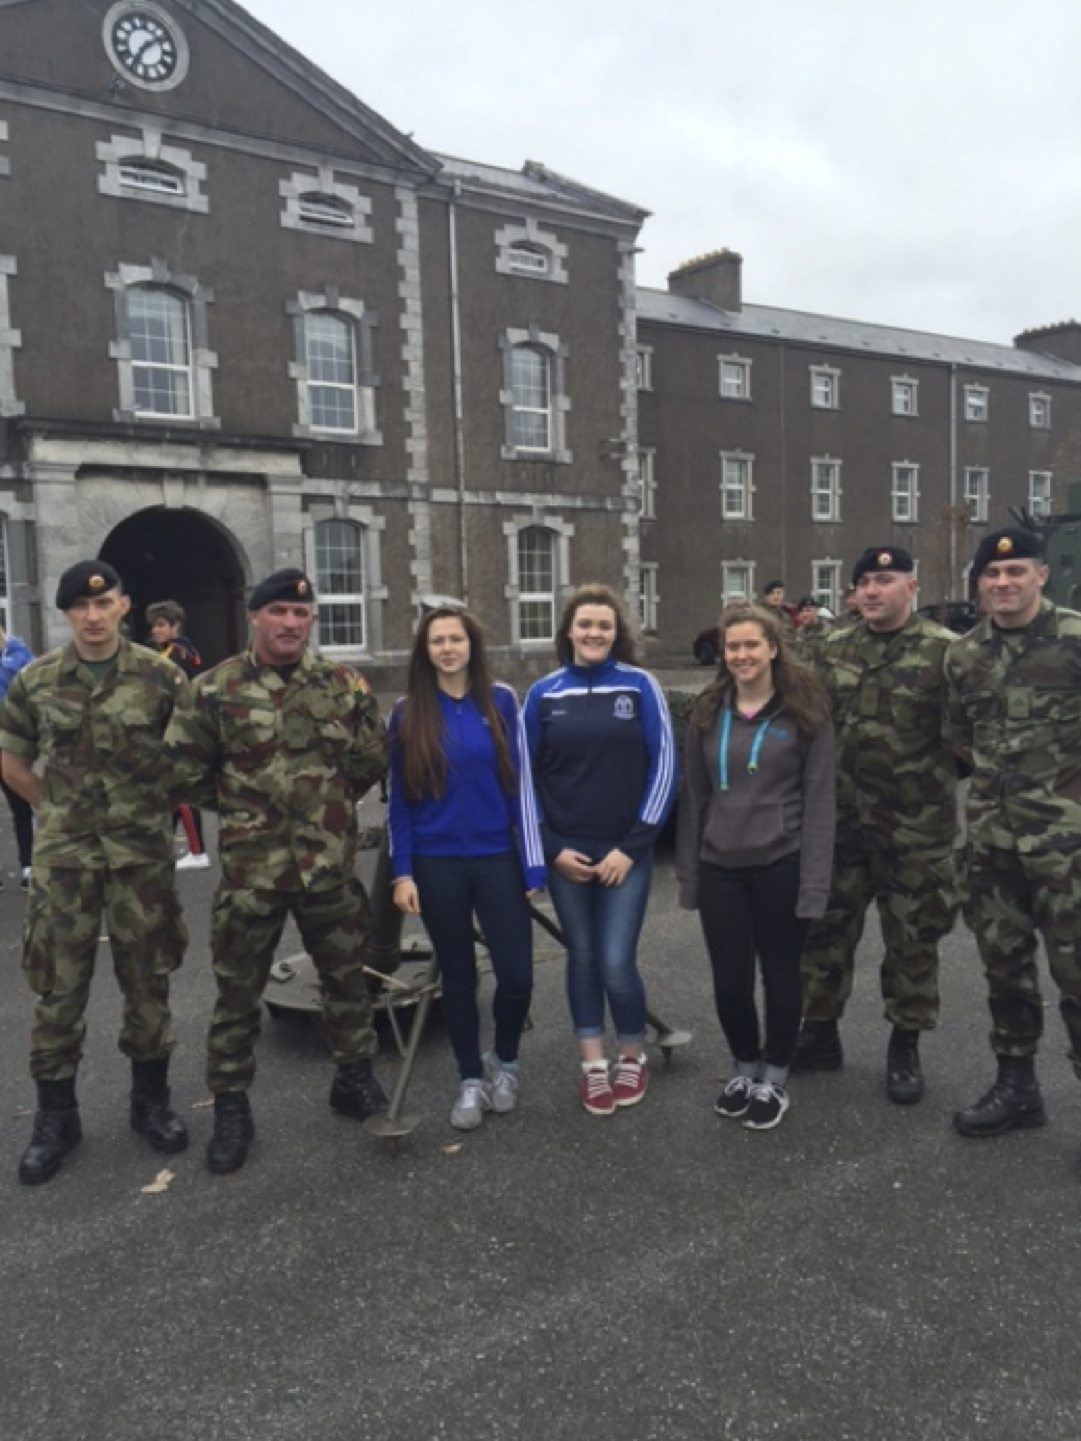 November 2015: Desmond College Transition Year Students go on Army Work Experience